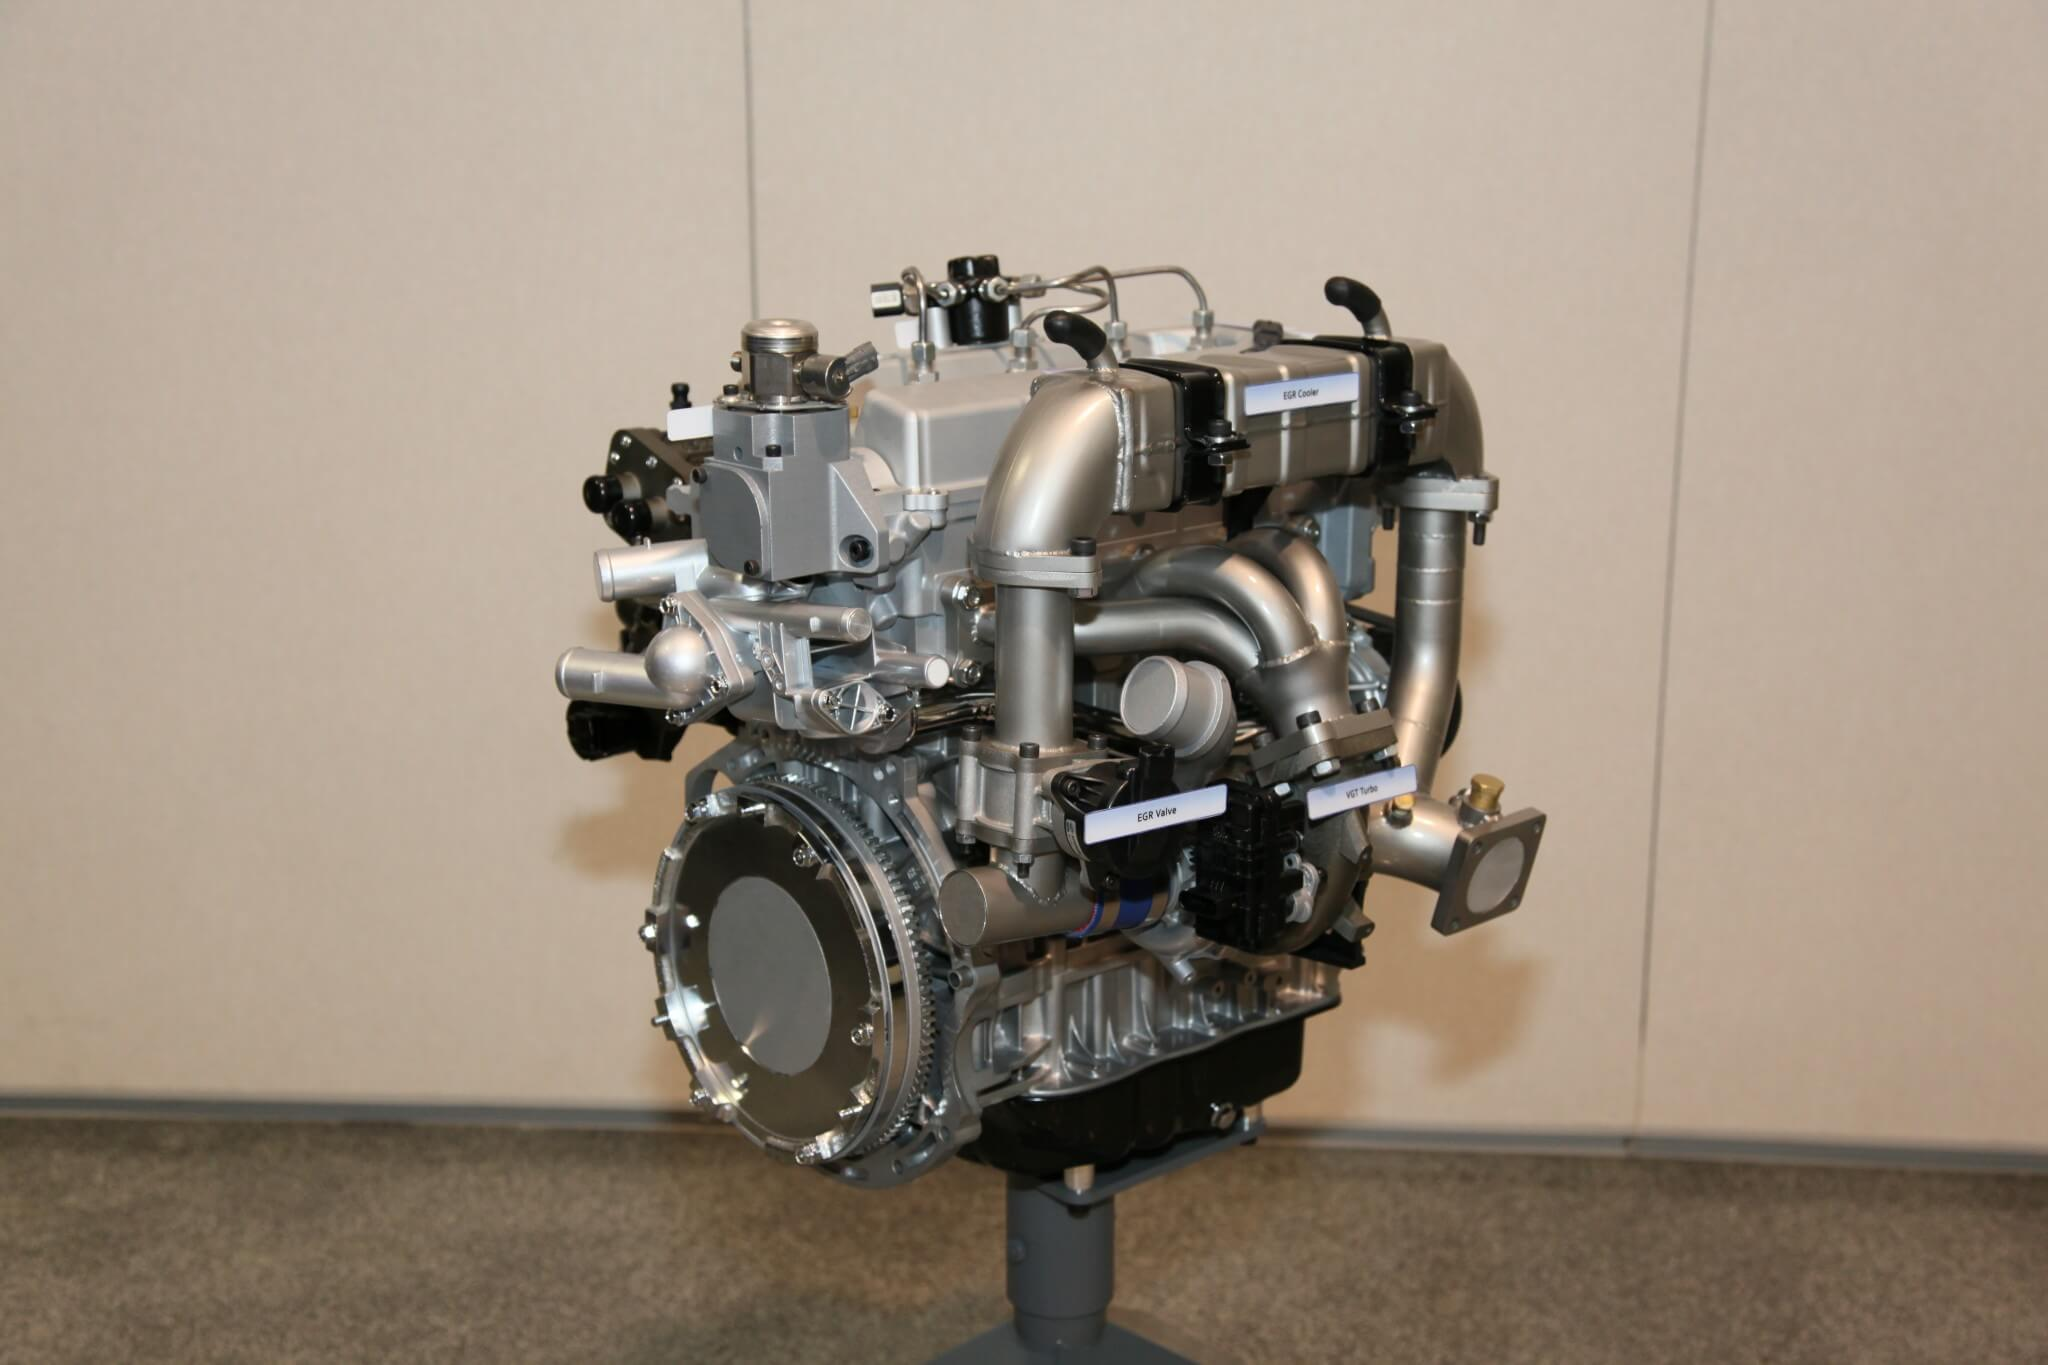 1. Looking similar to a diesel engine, Hyundai's diesel uses gasoline as fuel. Note the massive EGR cooler abutting the cylinder head. The engine is running 30 to 40 percent EGR to assist in lean-burn conditions. Not as visible is the common-rail fuel system.